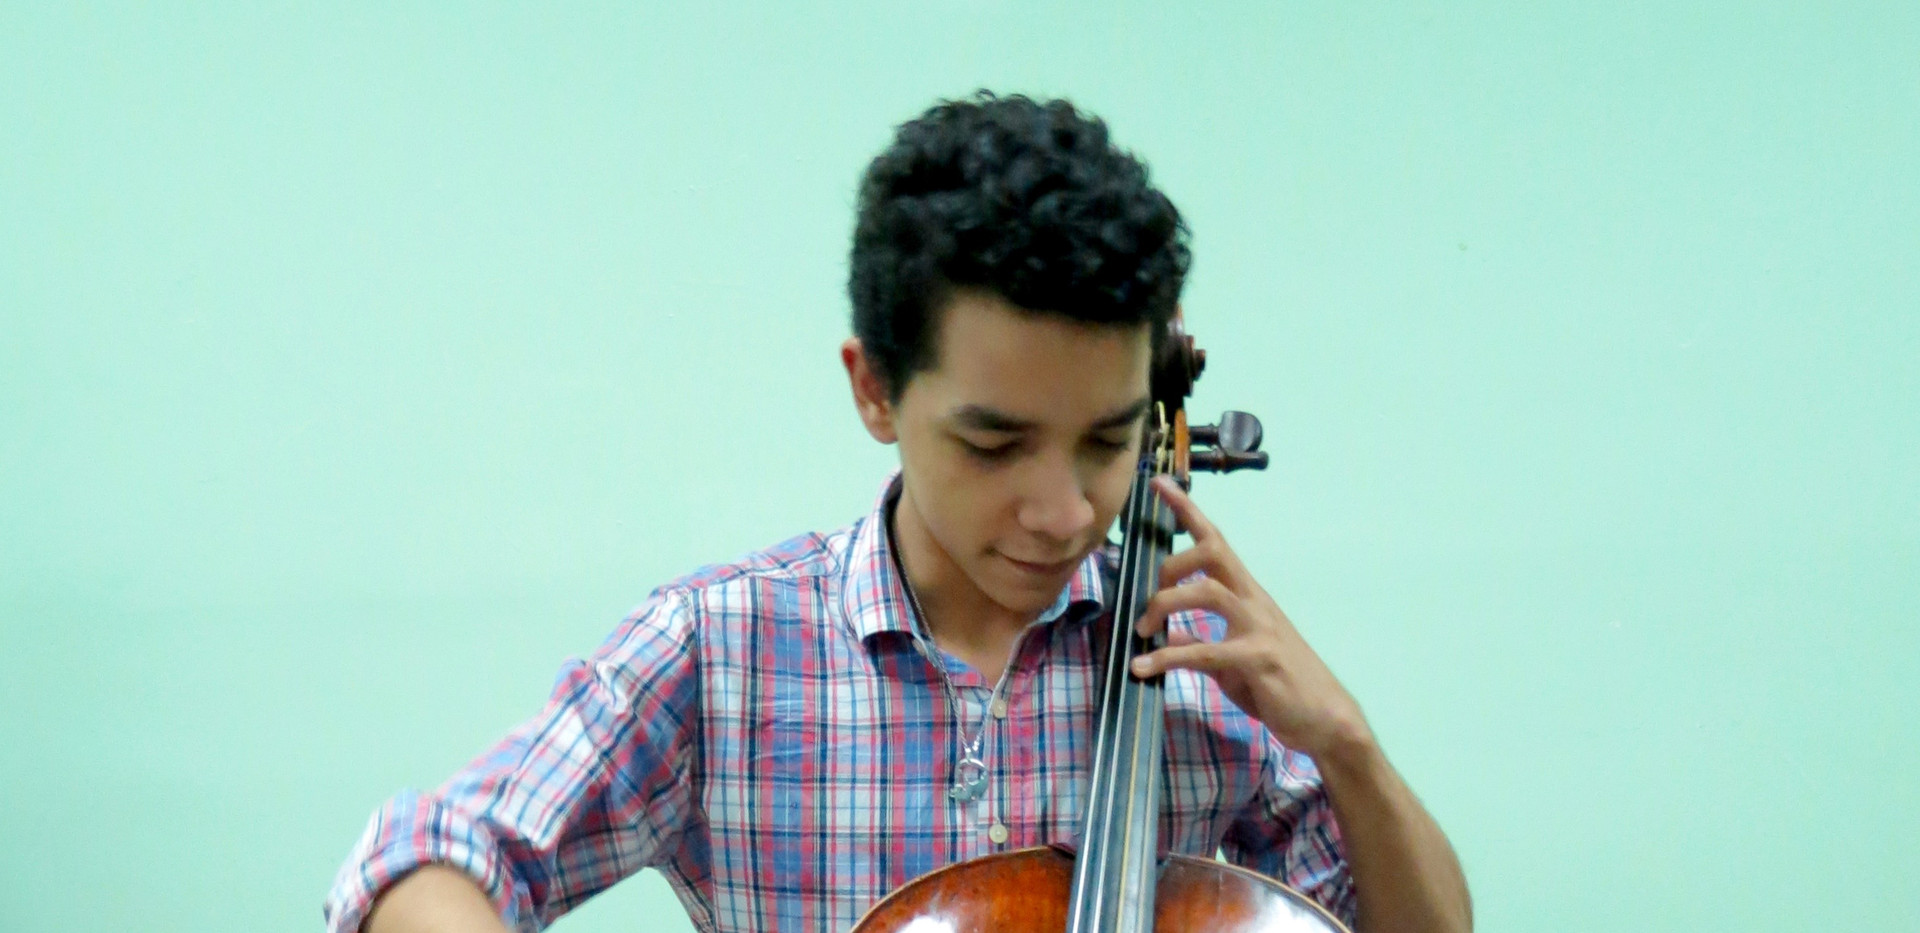 Playing Guy's Cello.jpg